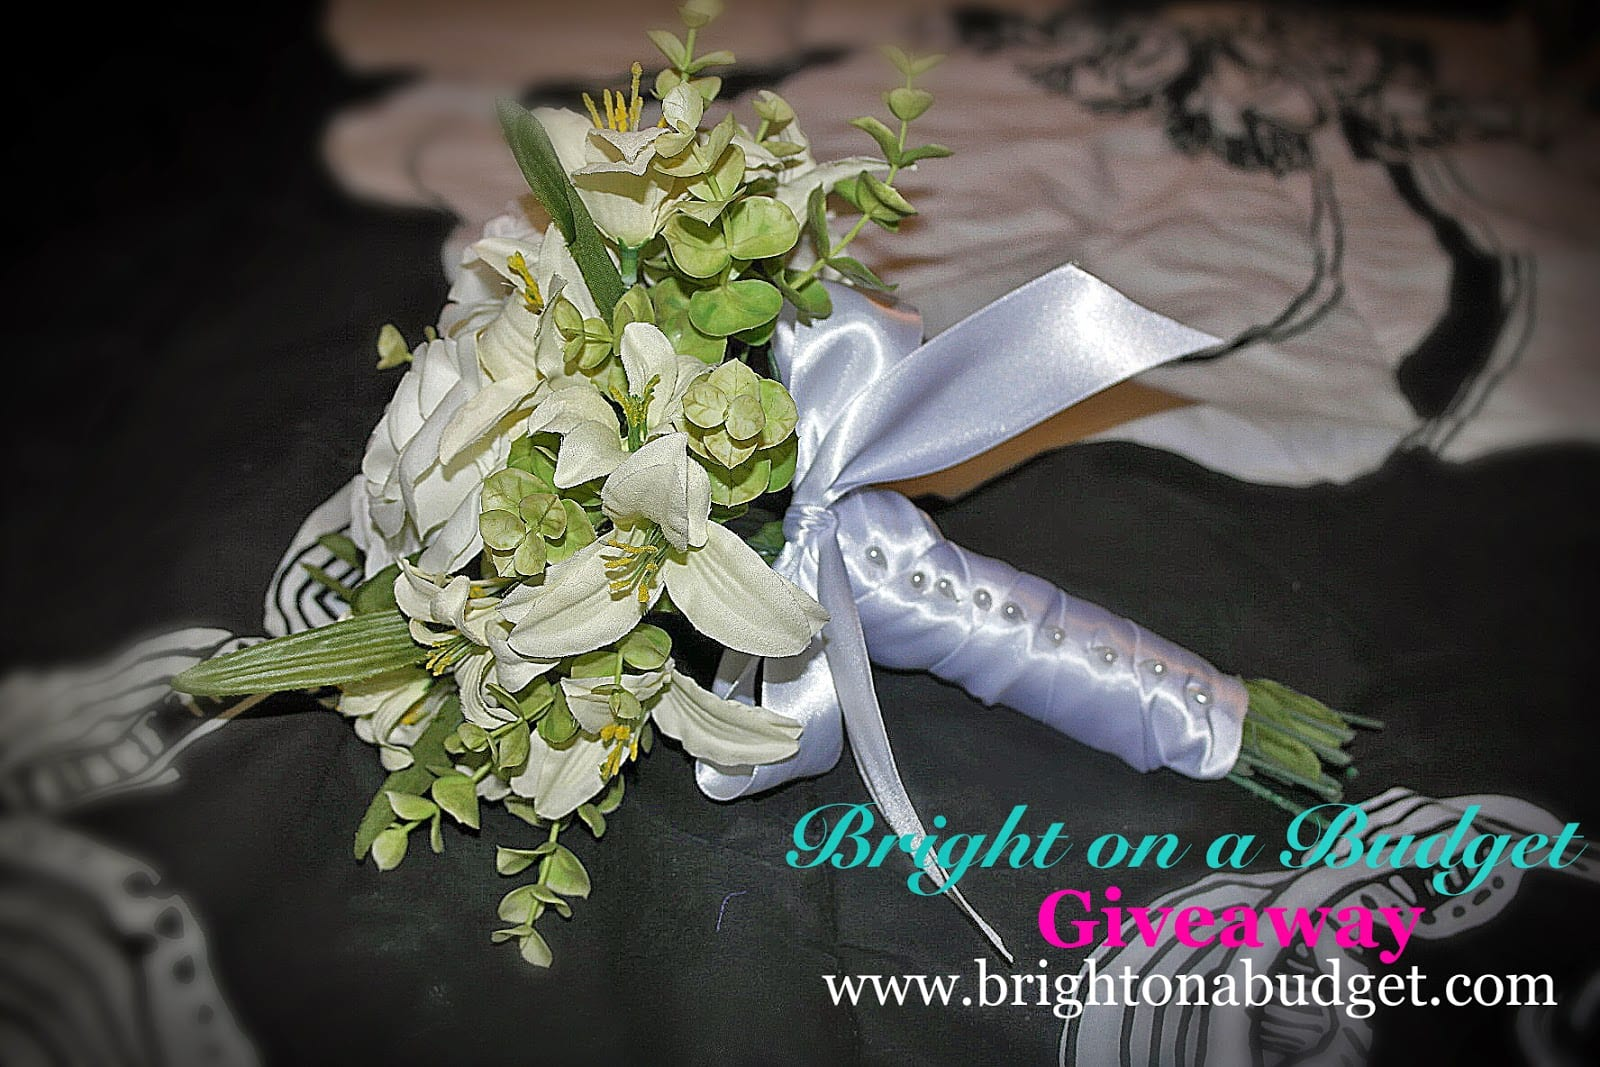 Bright [Wedding] on a Budget: D.I.Y. Bridal Bouquet for Less than ...